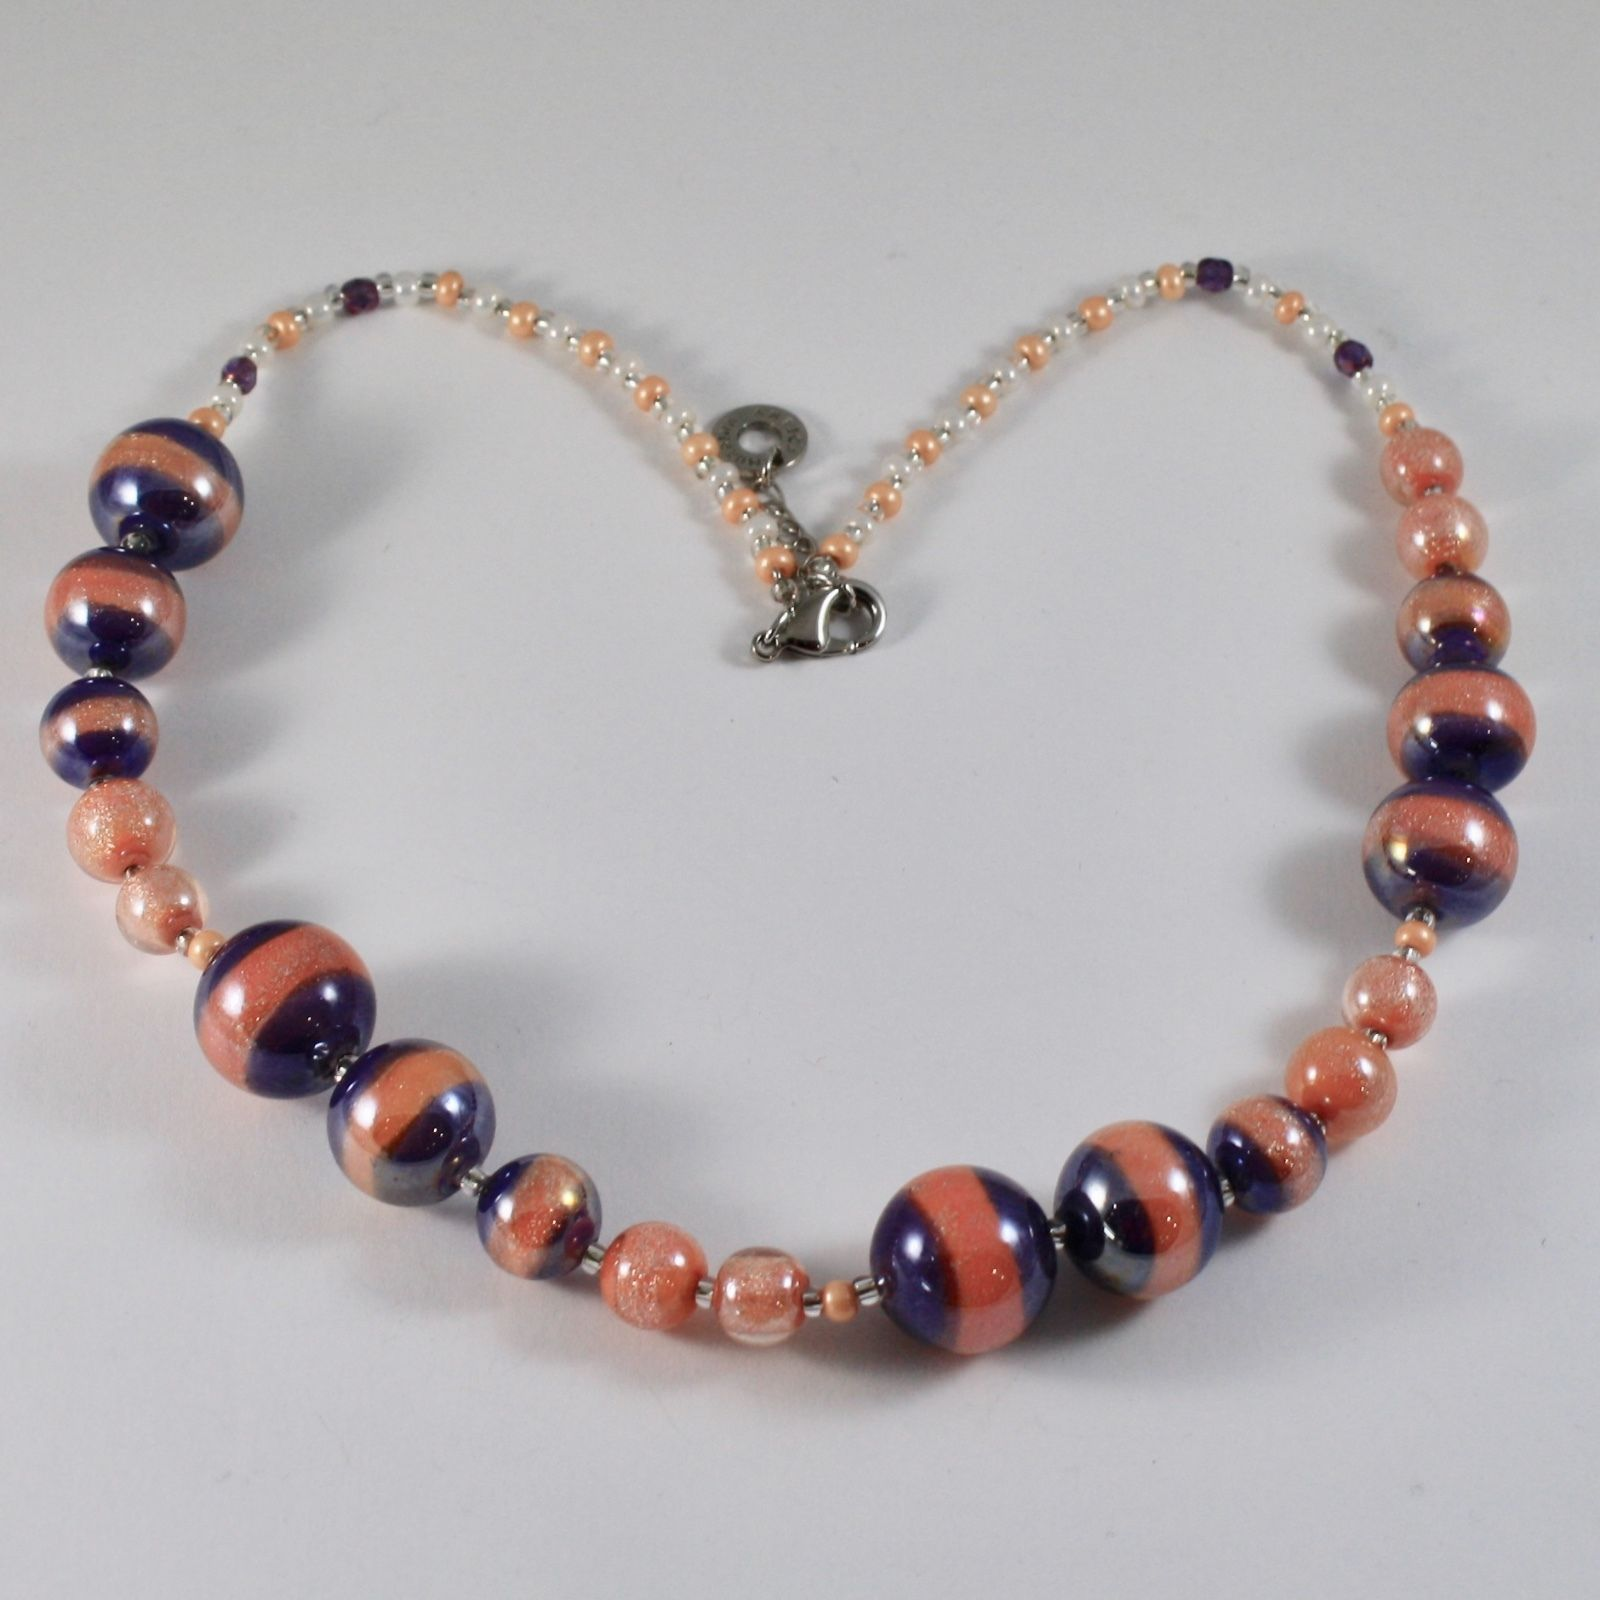 ANTICA MURRINA VENEZIA NECKLACE WITH ORANGE PURPLE MURANO GLASS BALLS 20 INCHES